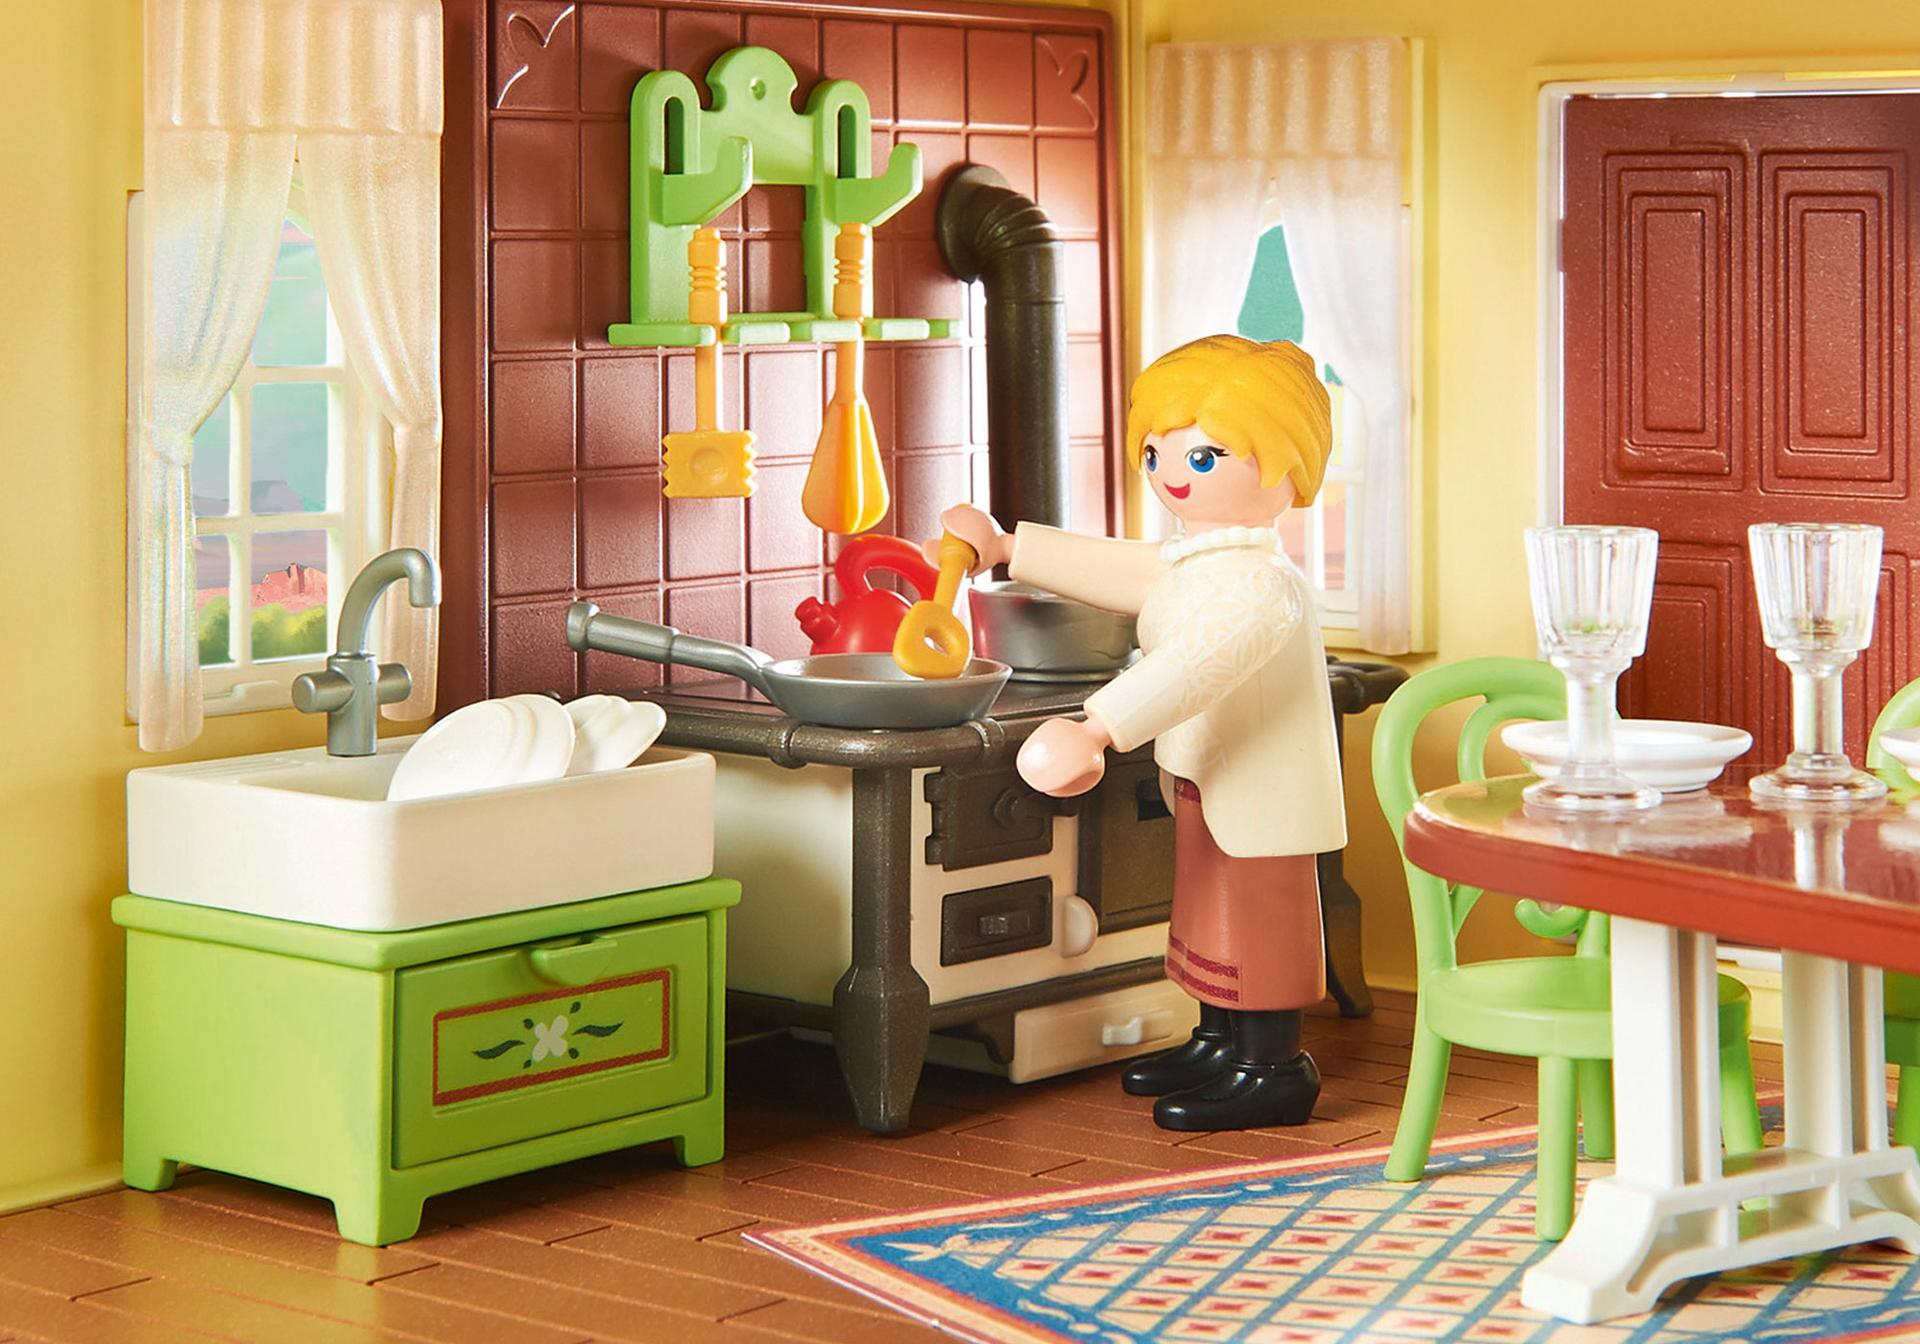 playmobil k che villa sehr kleine k che ikea stehtisch korpush he unterbauleuchte inspiration. Black Bedroom Furniture Sets. Home Design Ideas